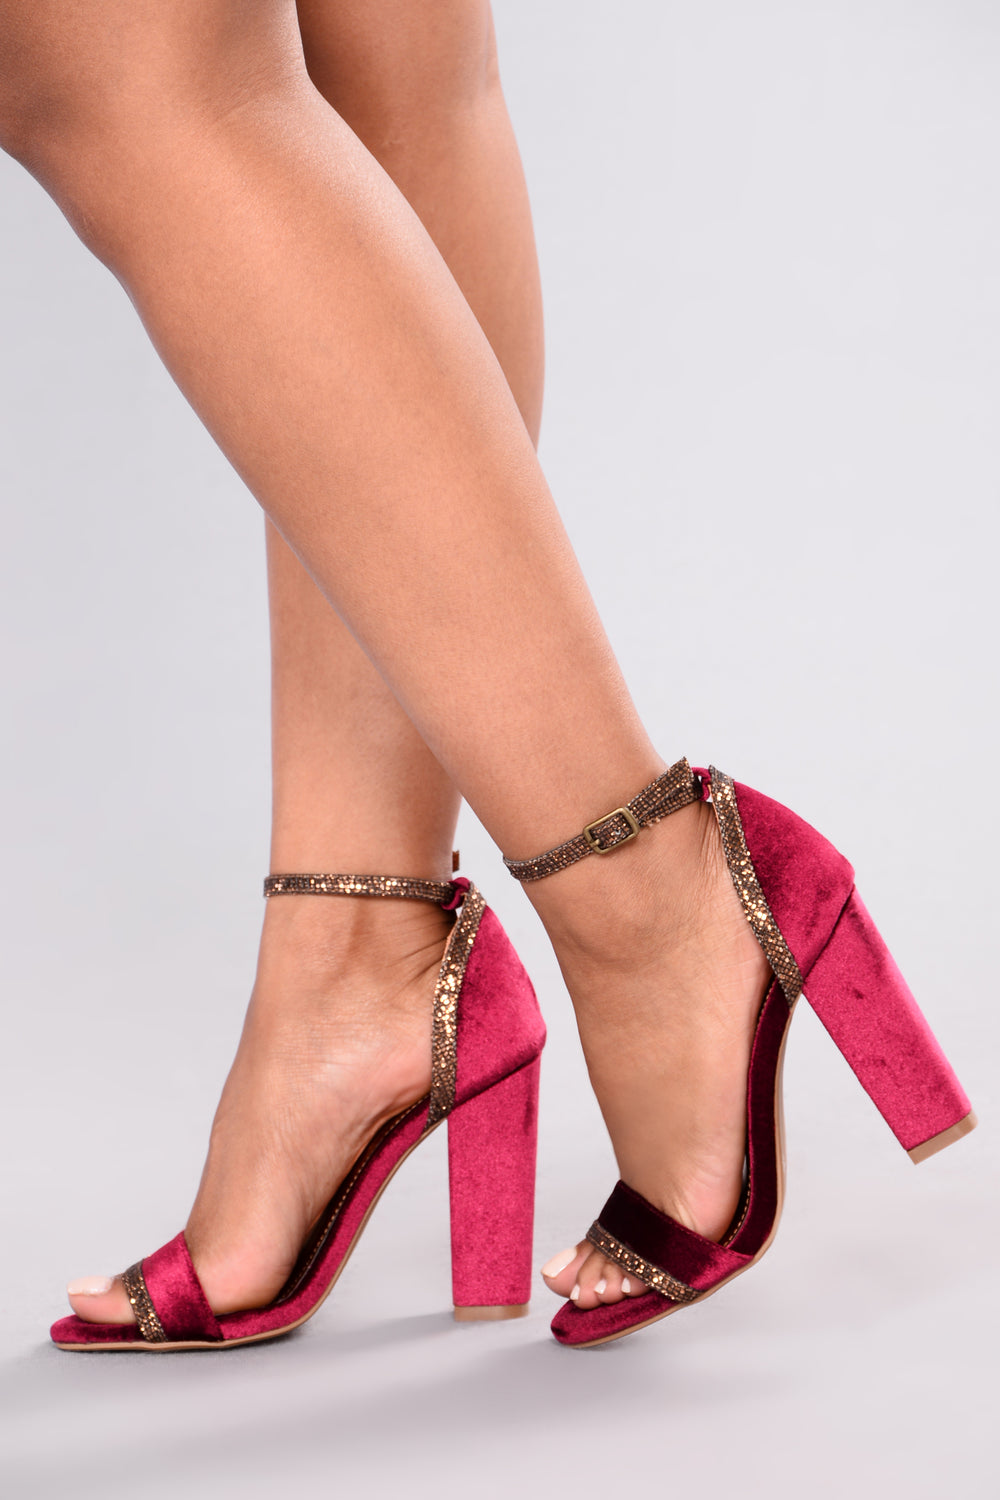 Vibe With Me Velvet Heel - Wine